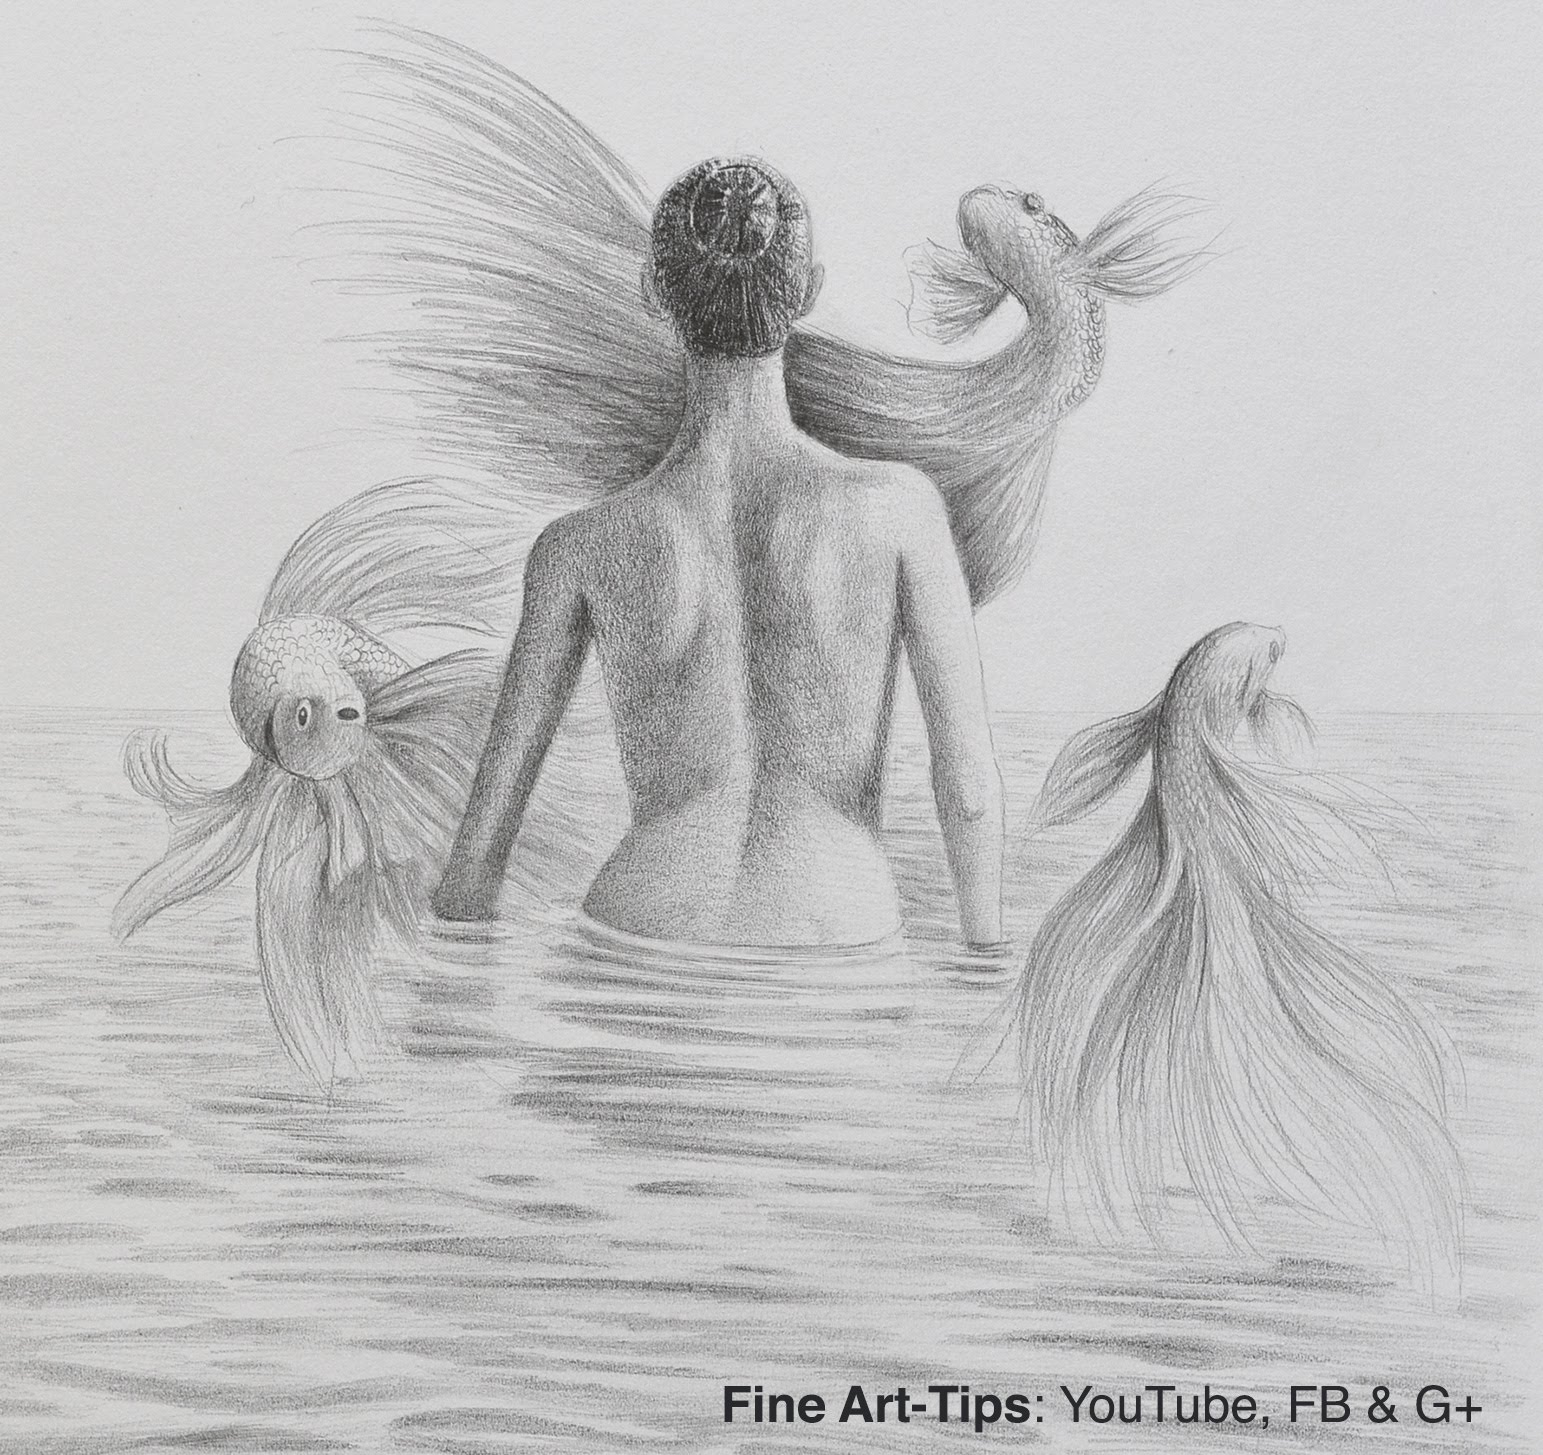 Drawn women woman's Draw to Back Surface With